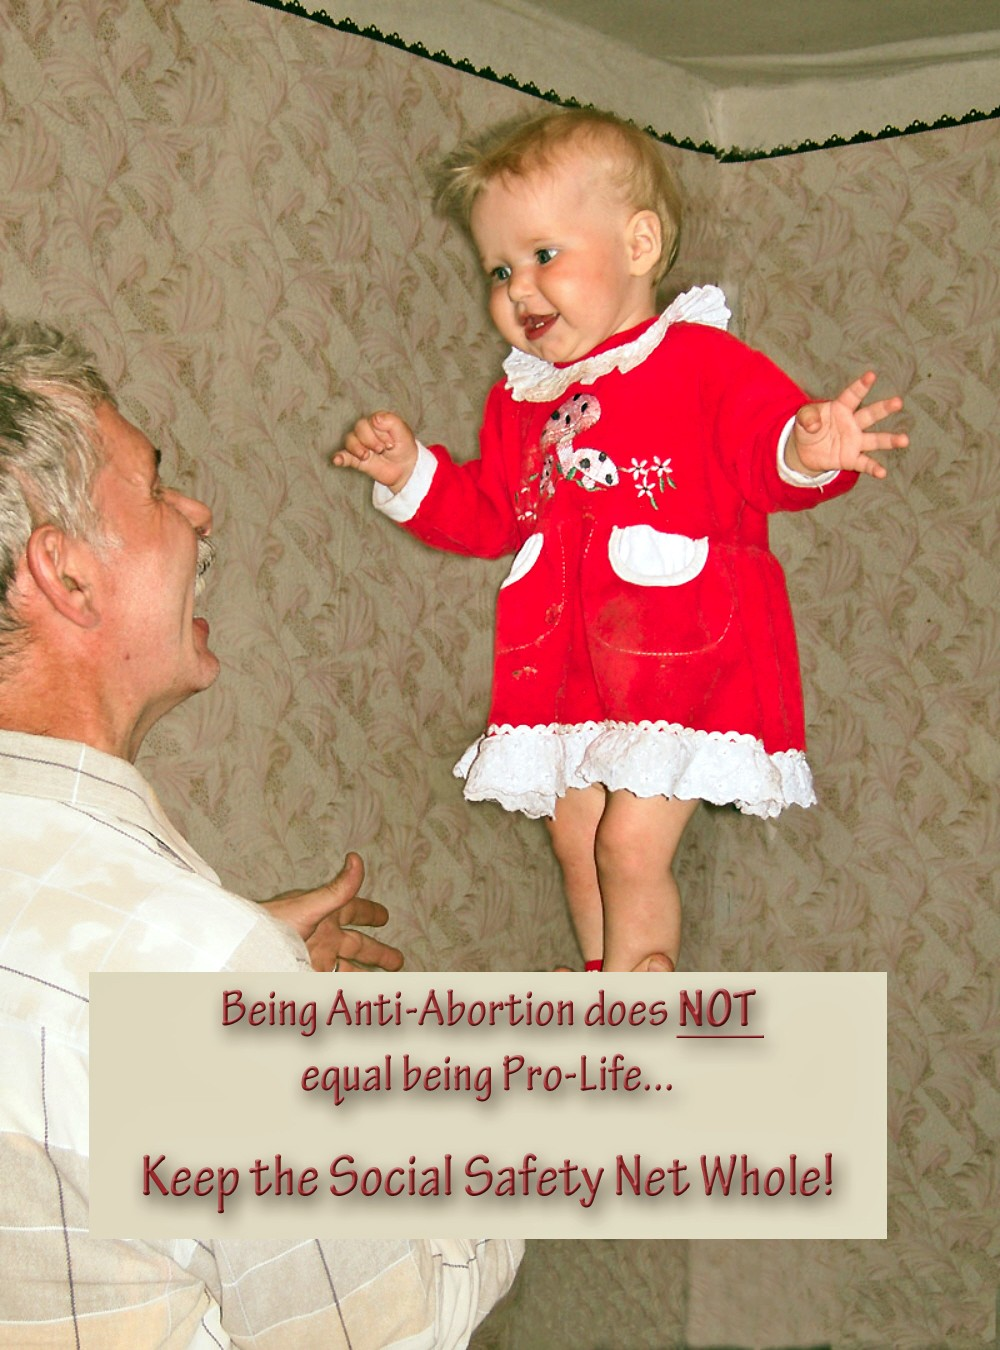 00 06.10.12 Oppose the Republican Anti-Life Programme